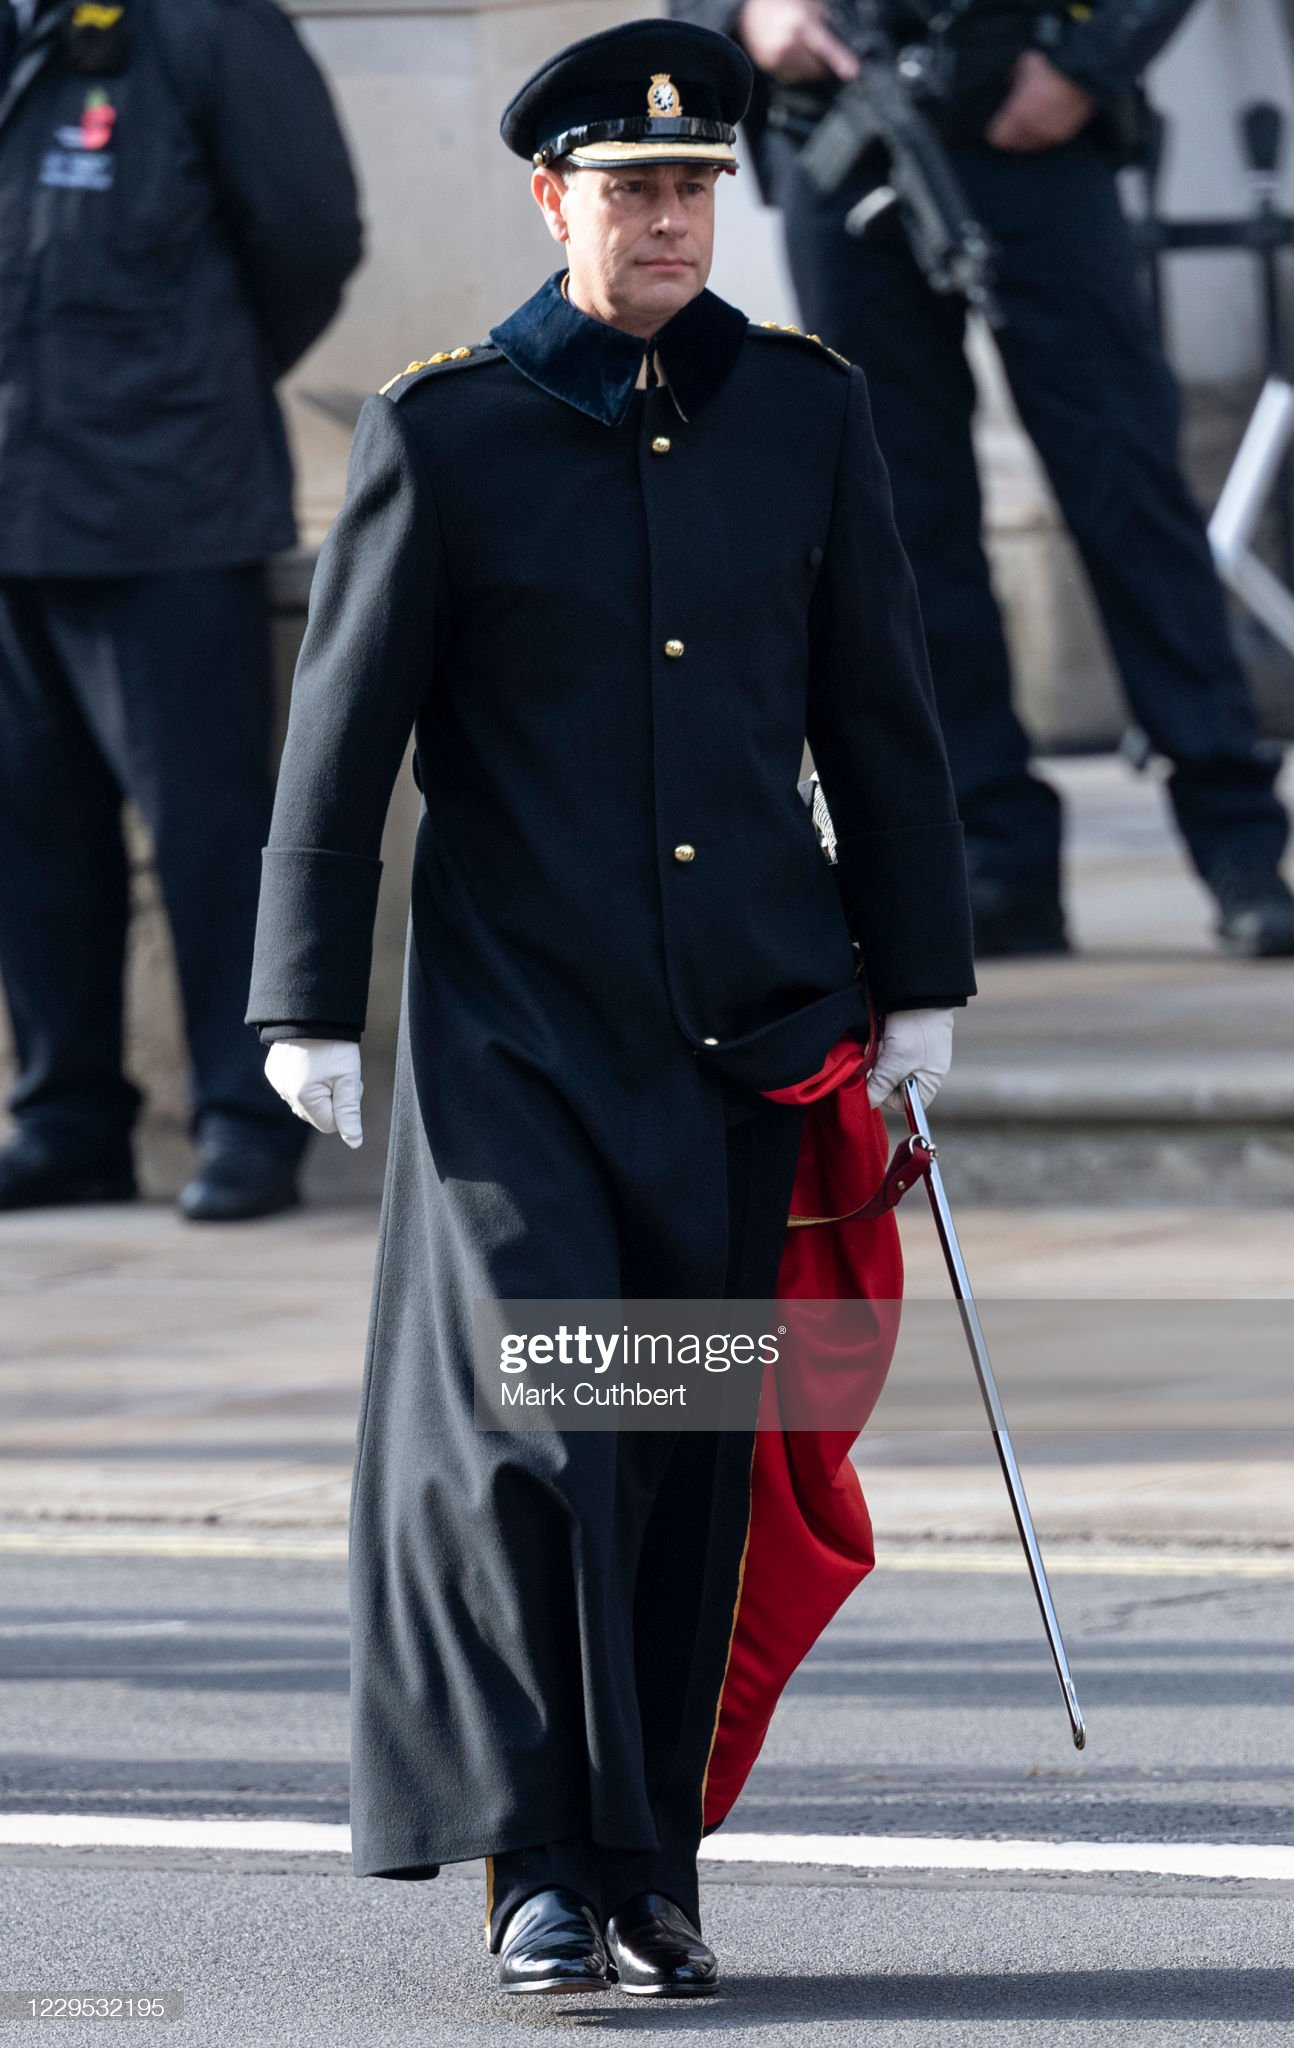 https://media.gettyimages.com/photos/prince-edward-earl-of-wessex-attends-the-annual-remembrance-sunday-picture-id1229532195?s=2048x2048